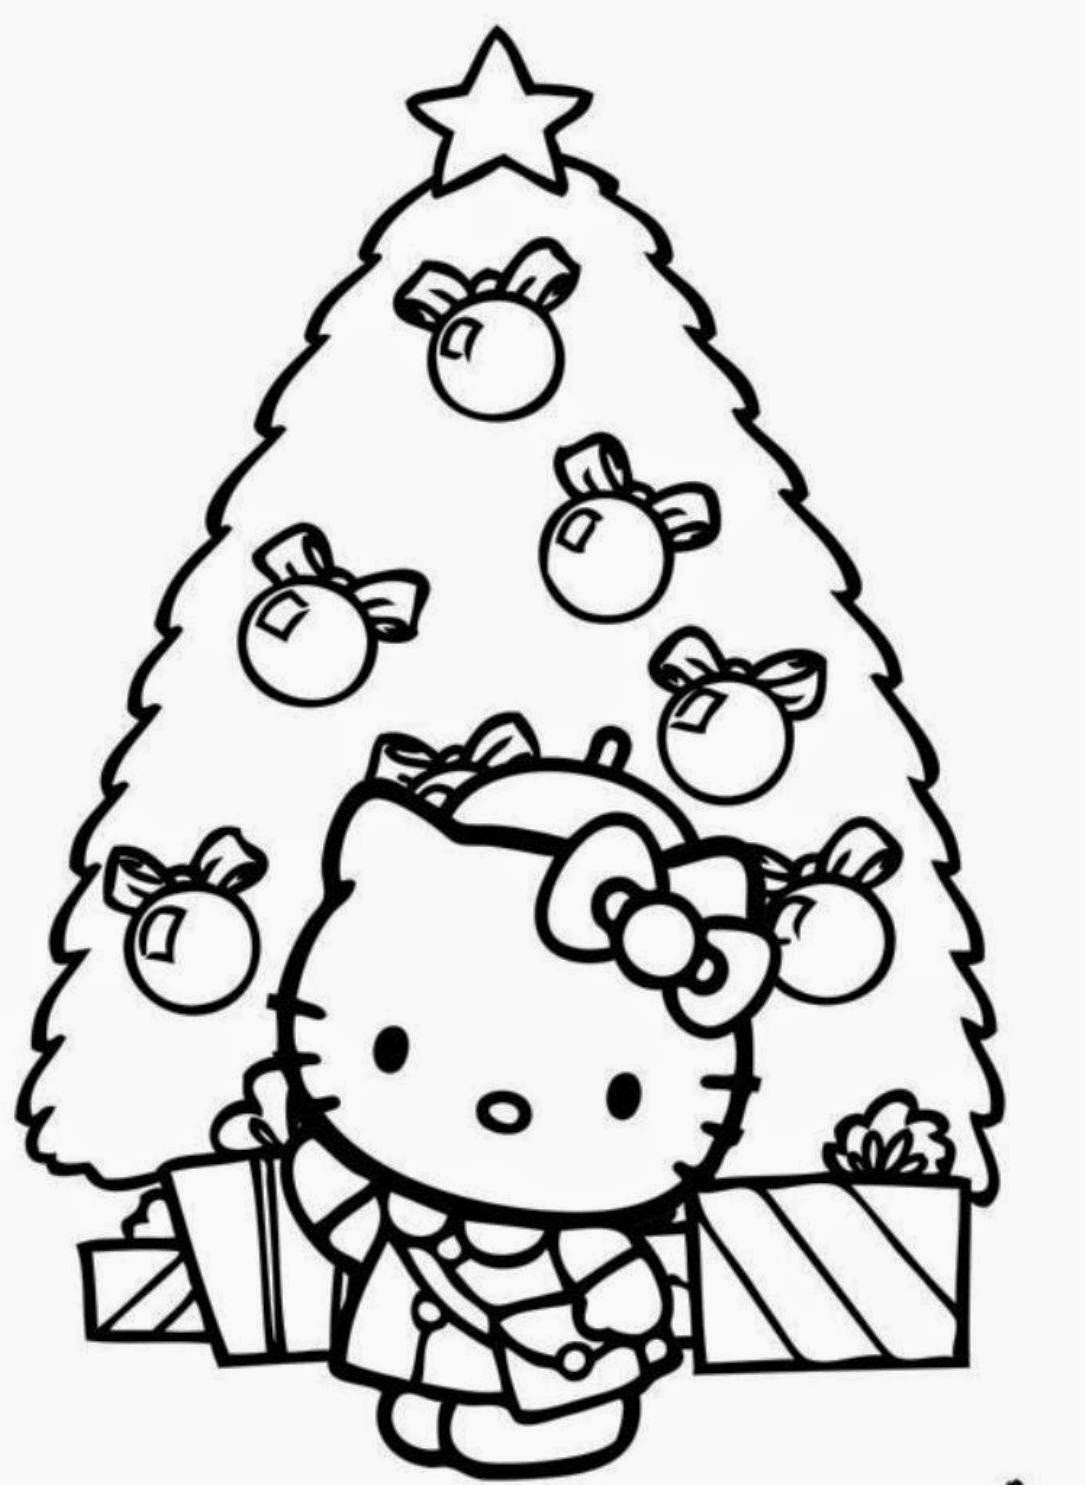 Cute Christmas Tree Drawing At Getdrawings